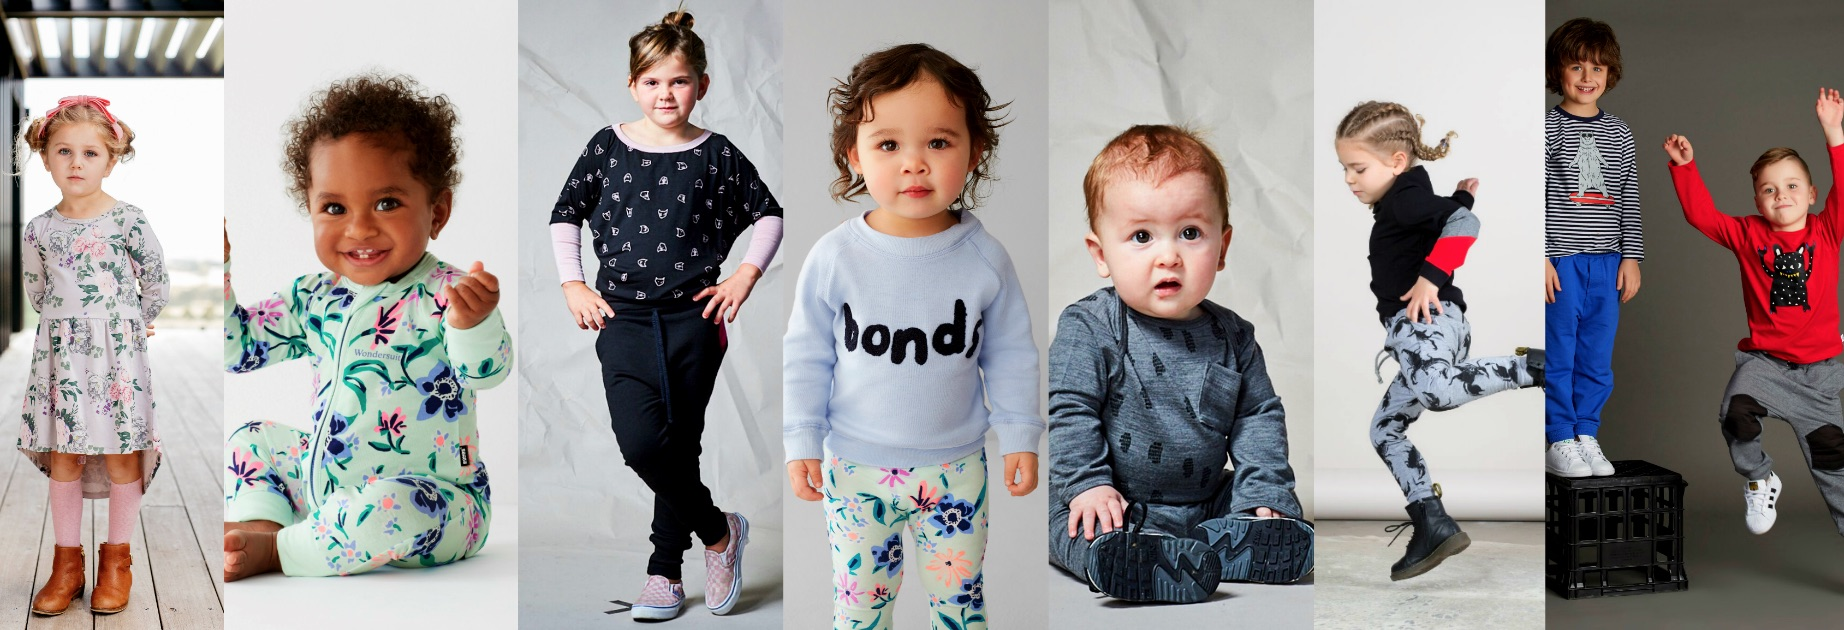 681bcb089 Specialists in Cotton & Merino Kids Clothing